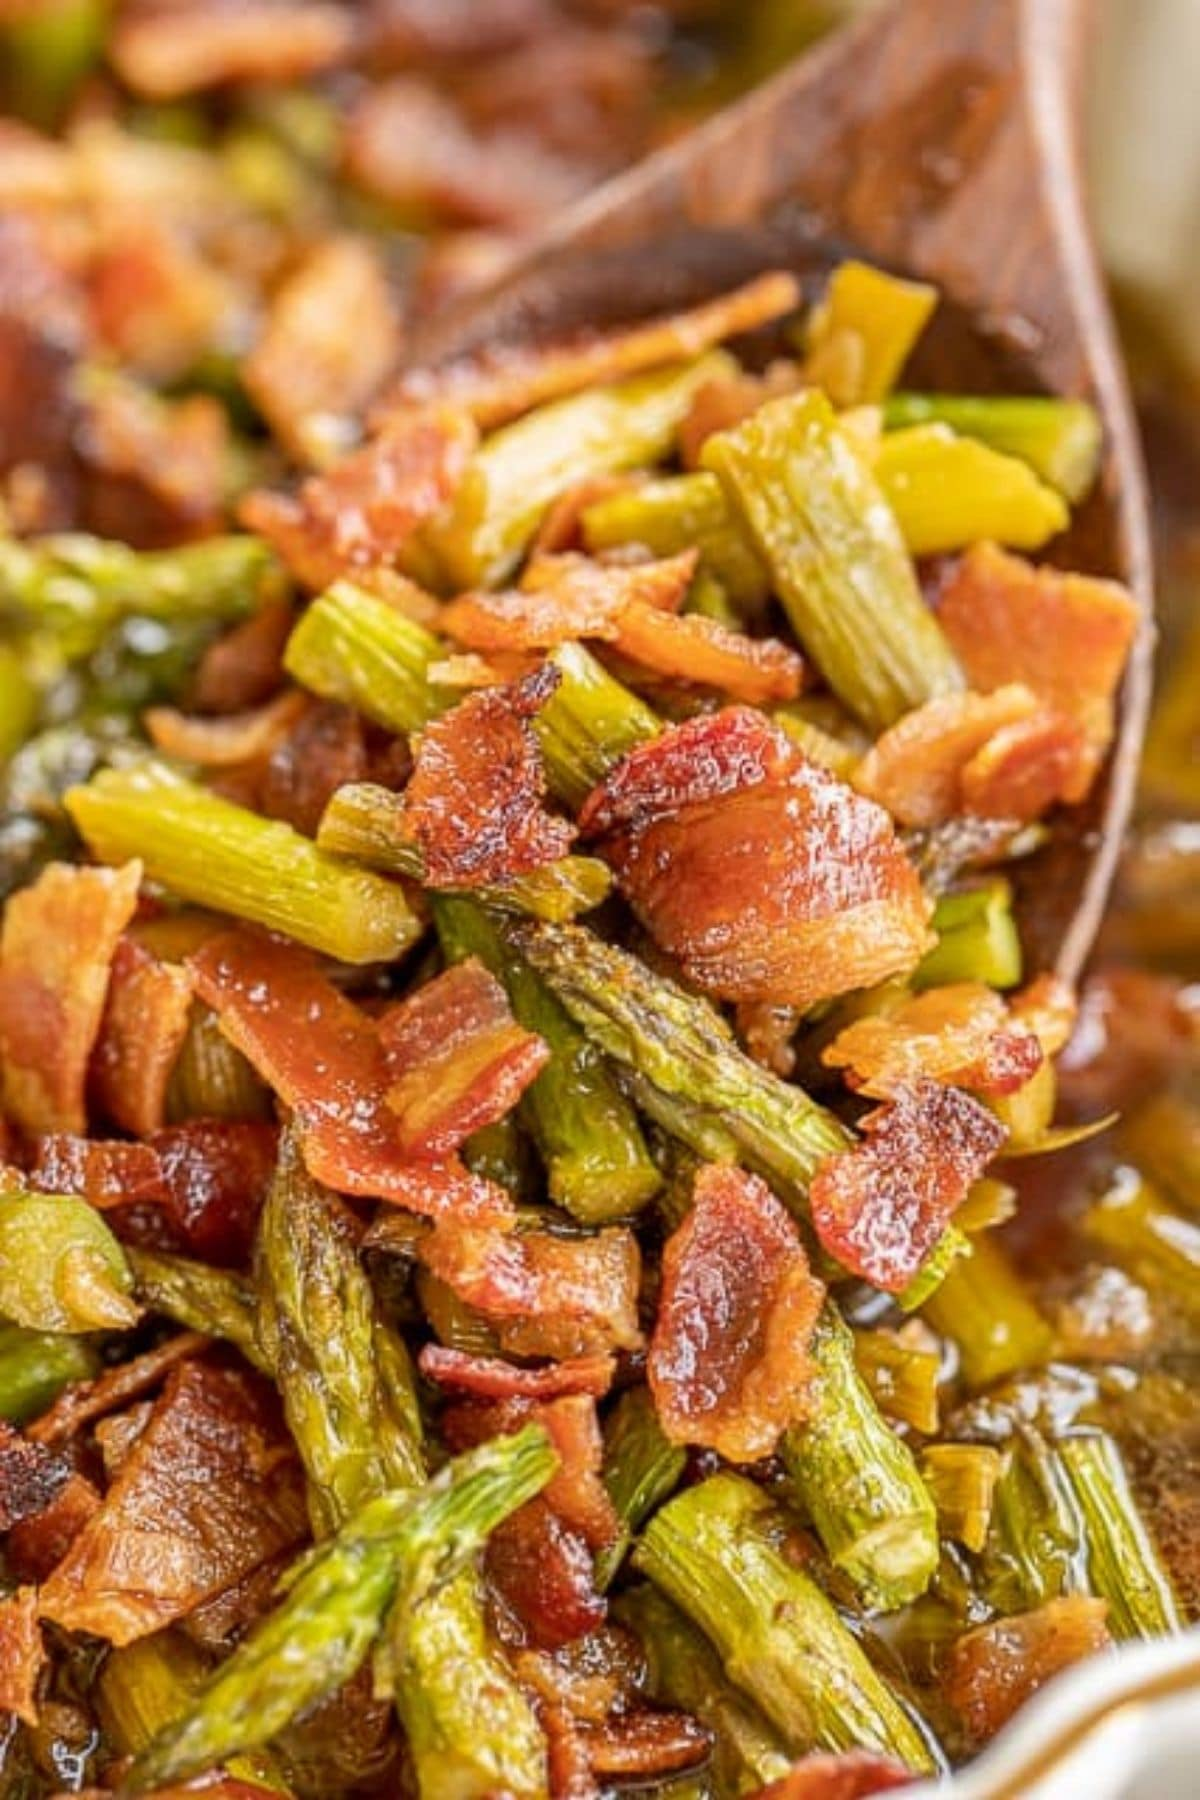 Spoon of bacon and asparagus